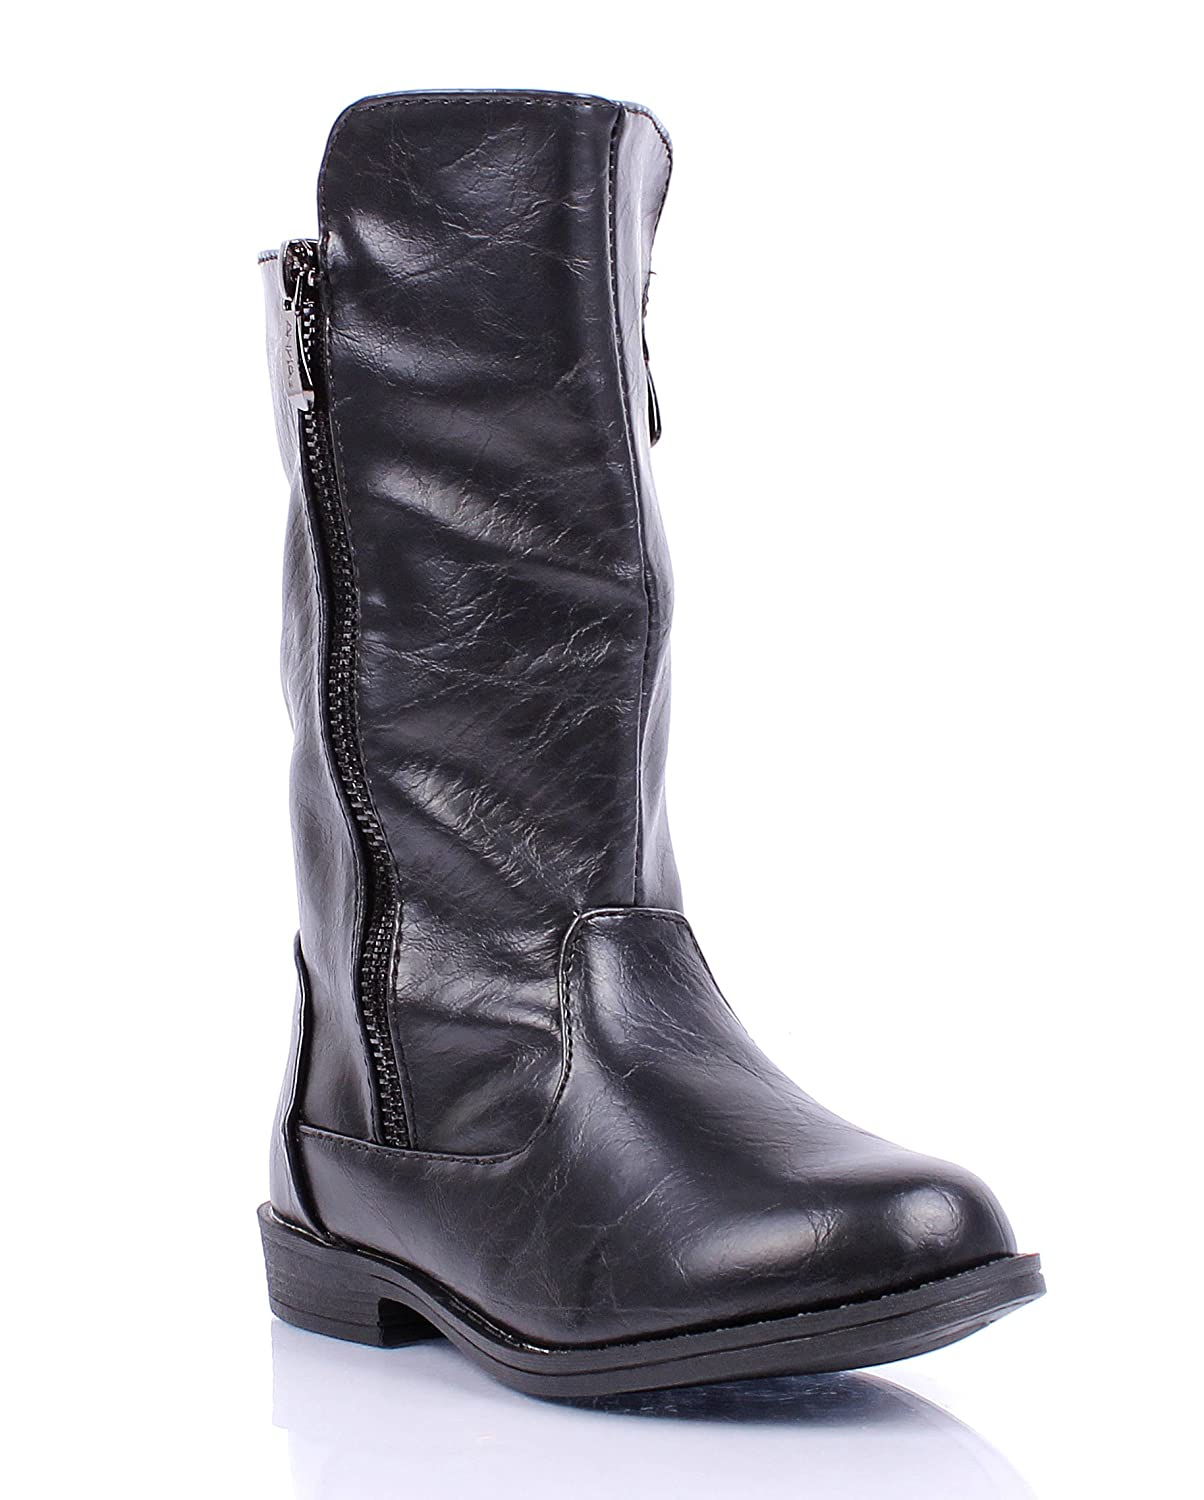 weyoh Fashion New Zip Open Preschool Faux Fur Inte Buckle Girls Kids Youth Mid-Calf Boots New Without Box